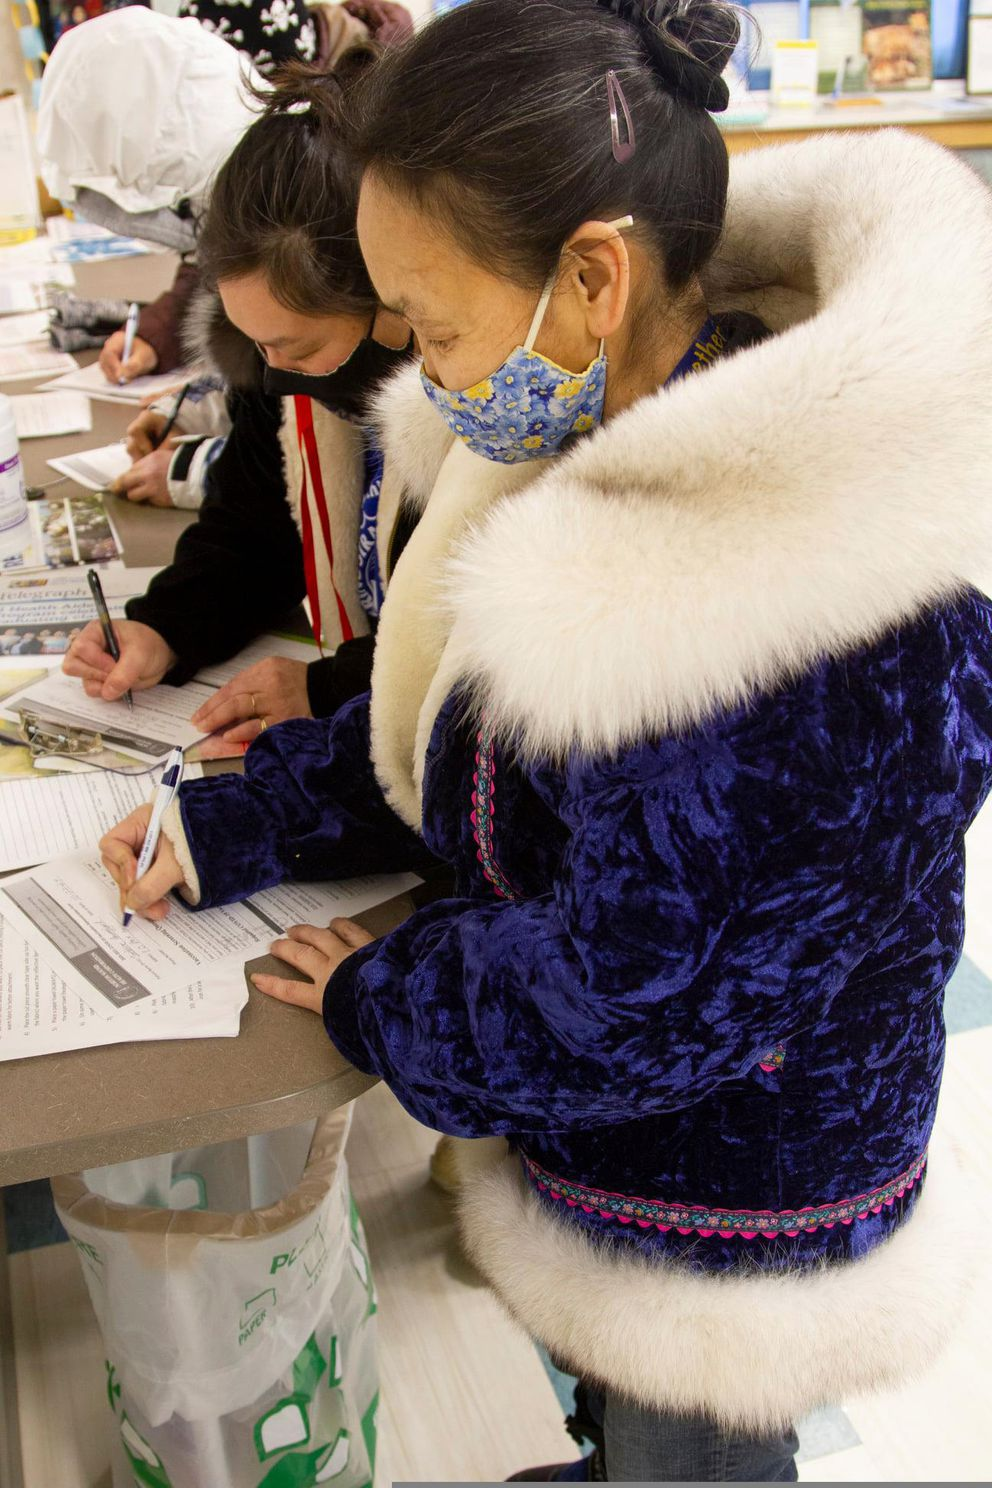 In this photo, provided by Norton Sound Health Corp., are Joey Annogiyuk, left, and Miriam Toolie signing up to receive the Pfizer vaccine at the Savoonga Clinic in Savoonga, Alaska, on Jan. 14, 2021. Some of Alaska's highest vaccination rates among those 16 or older have been in some of its remotest, hardest-to-access communities, where the toll of past flu or tuberculosis outbreaks hasn't been forgotten. (Reba Lean/Norton Sound Health Corp. via AP)